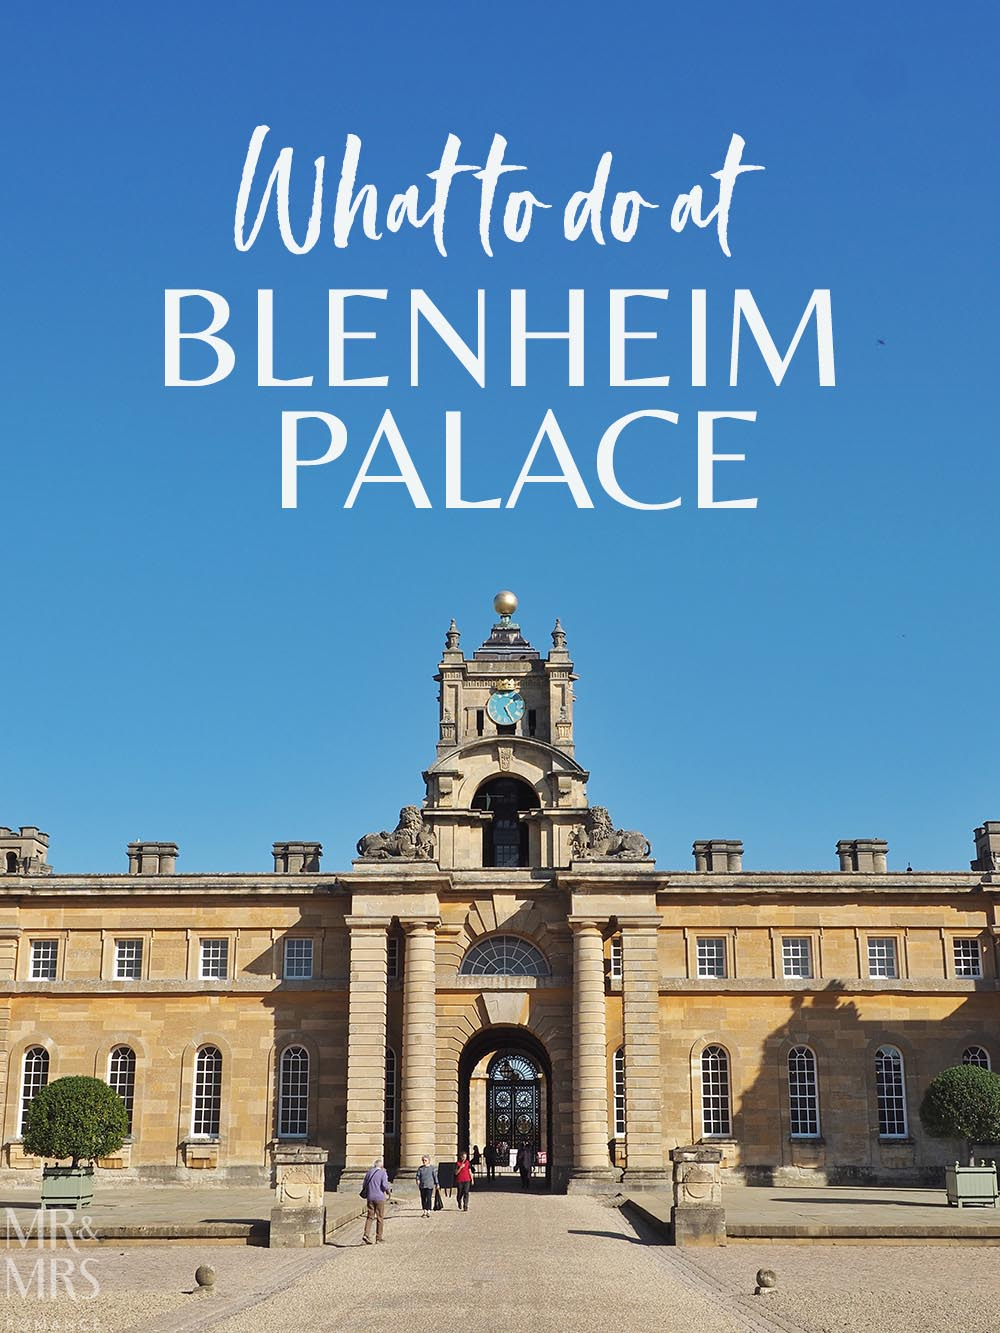 What to do at Blenheim Palace England